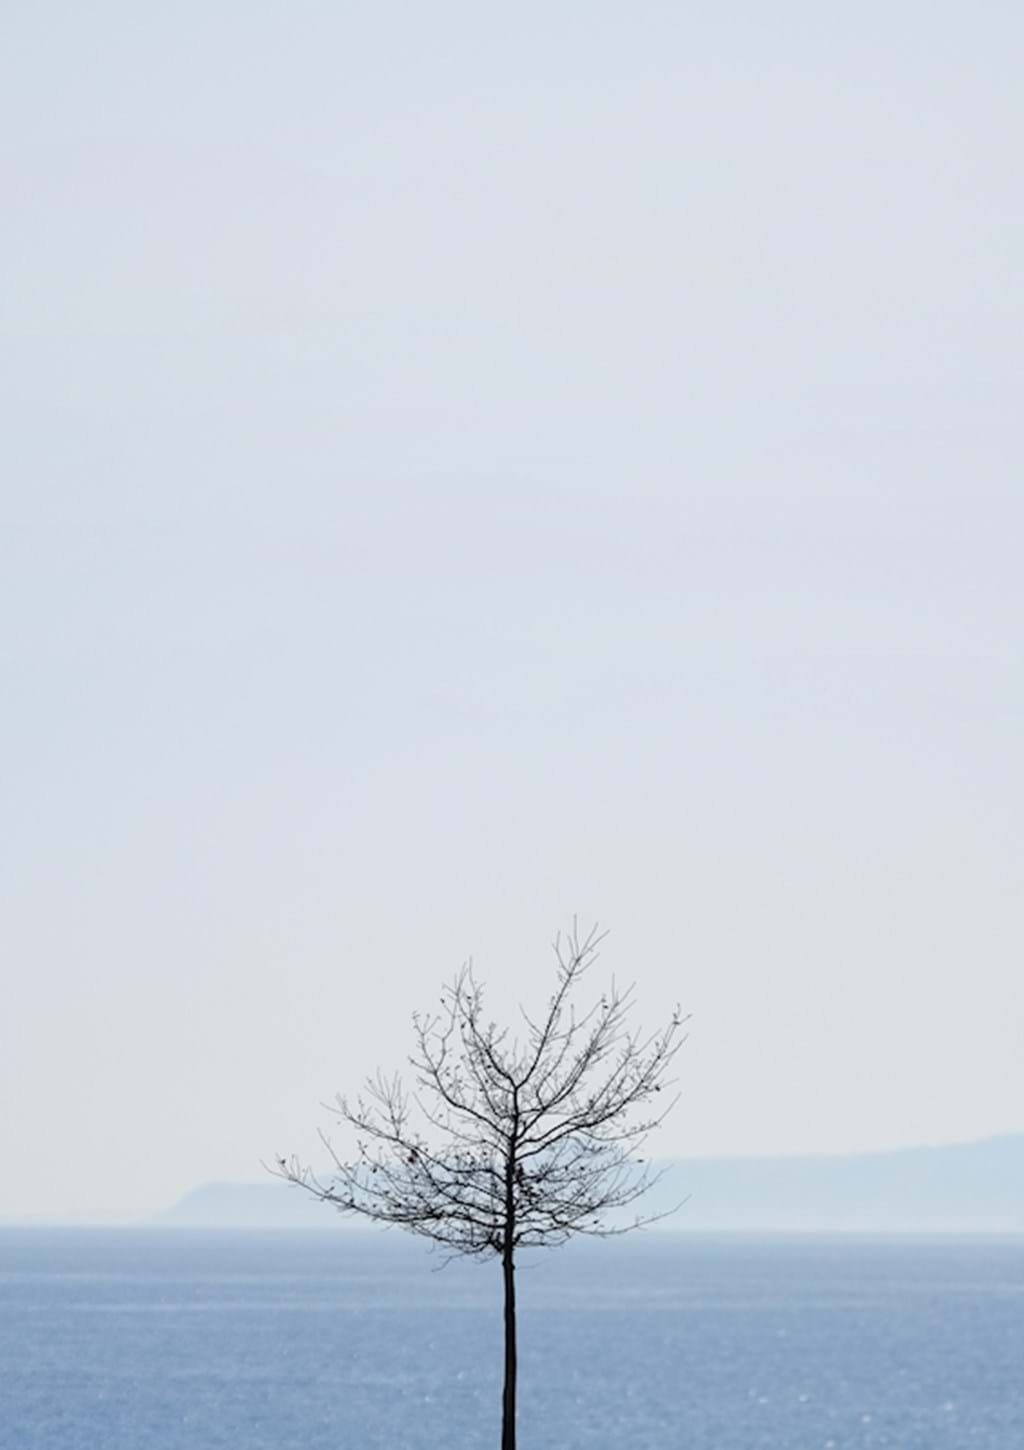 Poster: Tree by the ocean - Nature